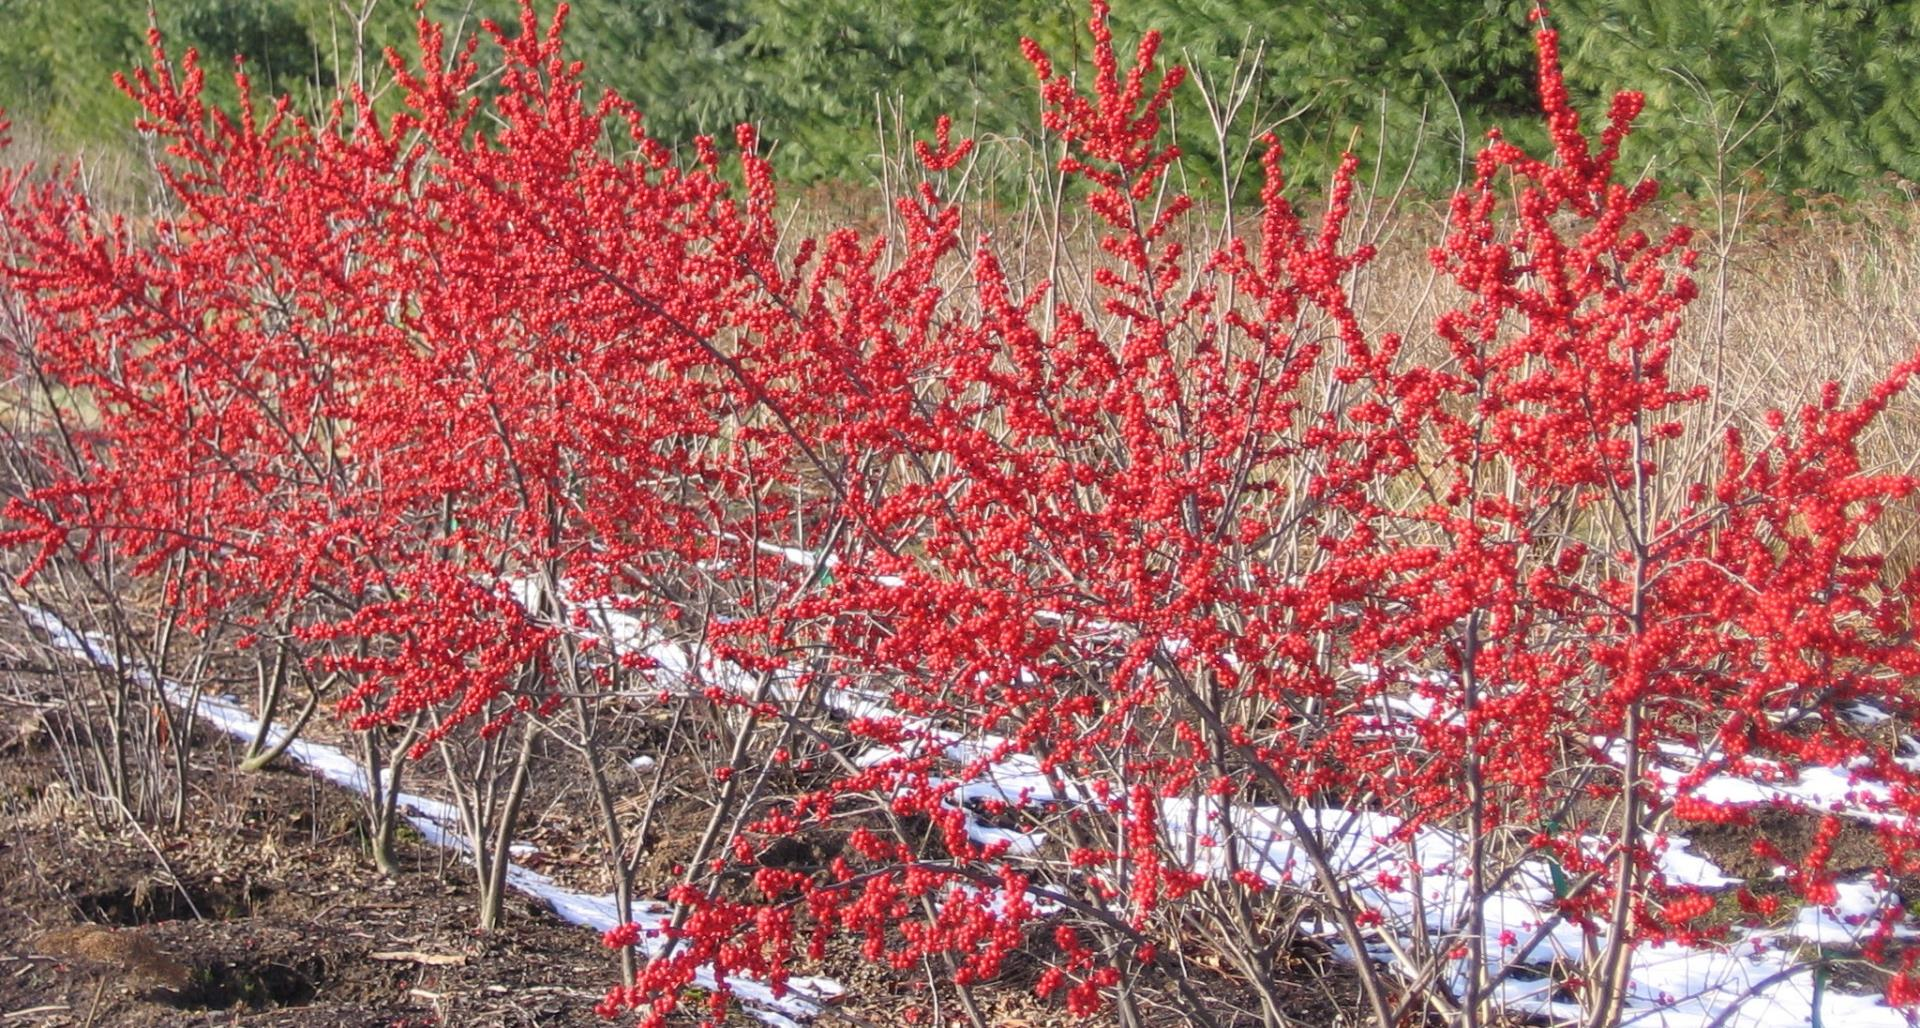 #TeachingTuesday: Winterberry Holly